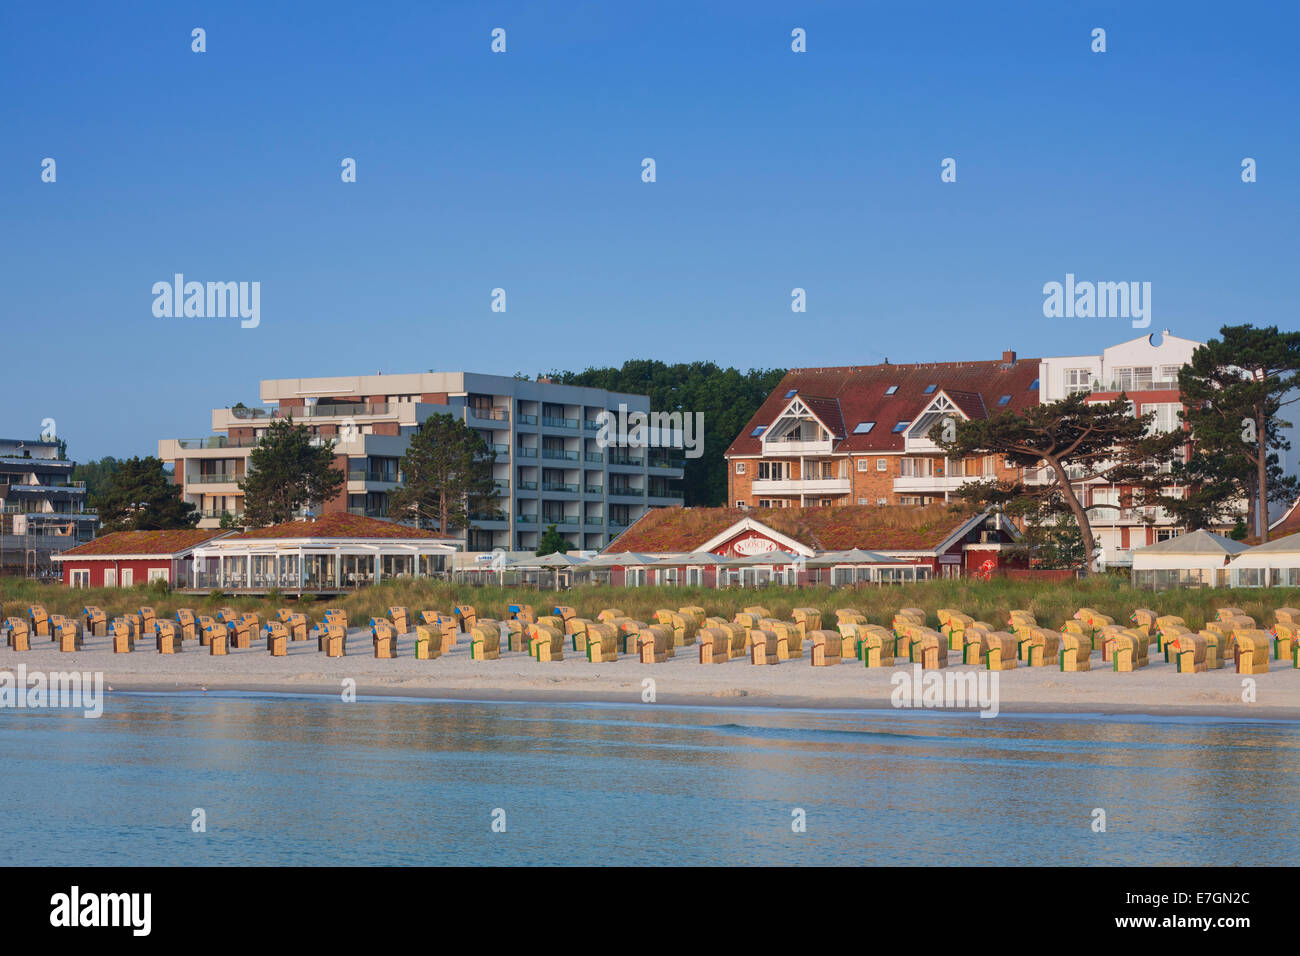 Roofed wicker beach chairs along the Baltic Sea at seaside resort Scharbeutz, Ostholstein, Schleswig-Holstein, Germany - Stock Image